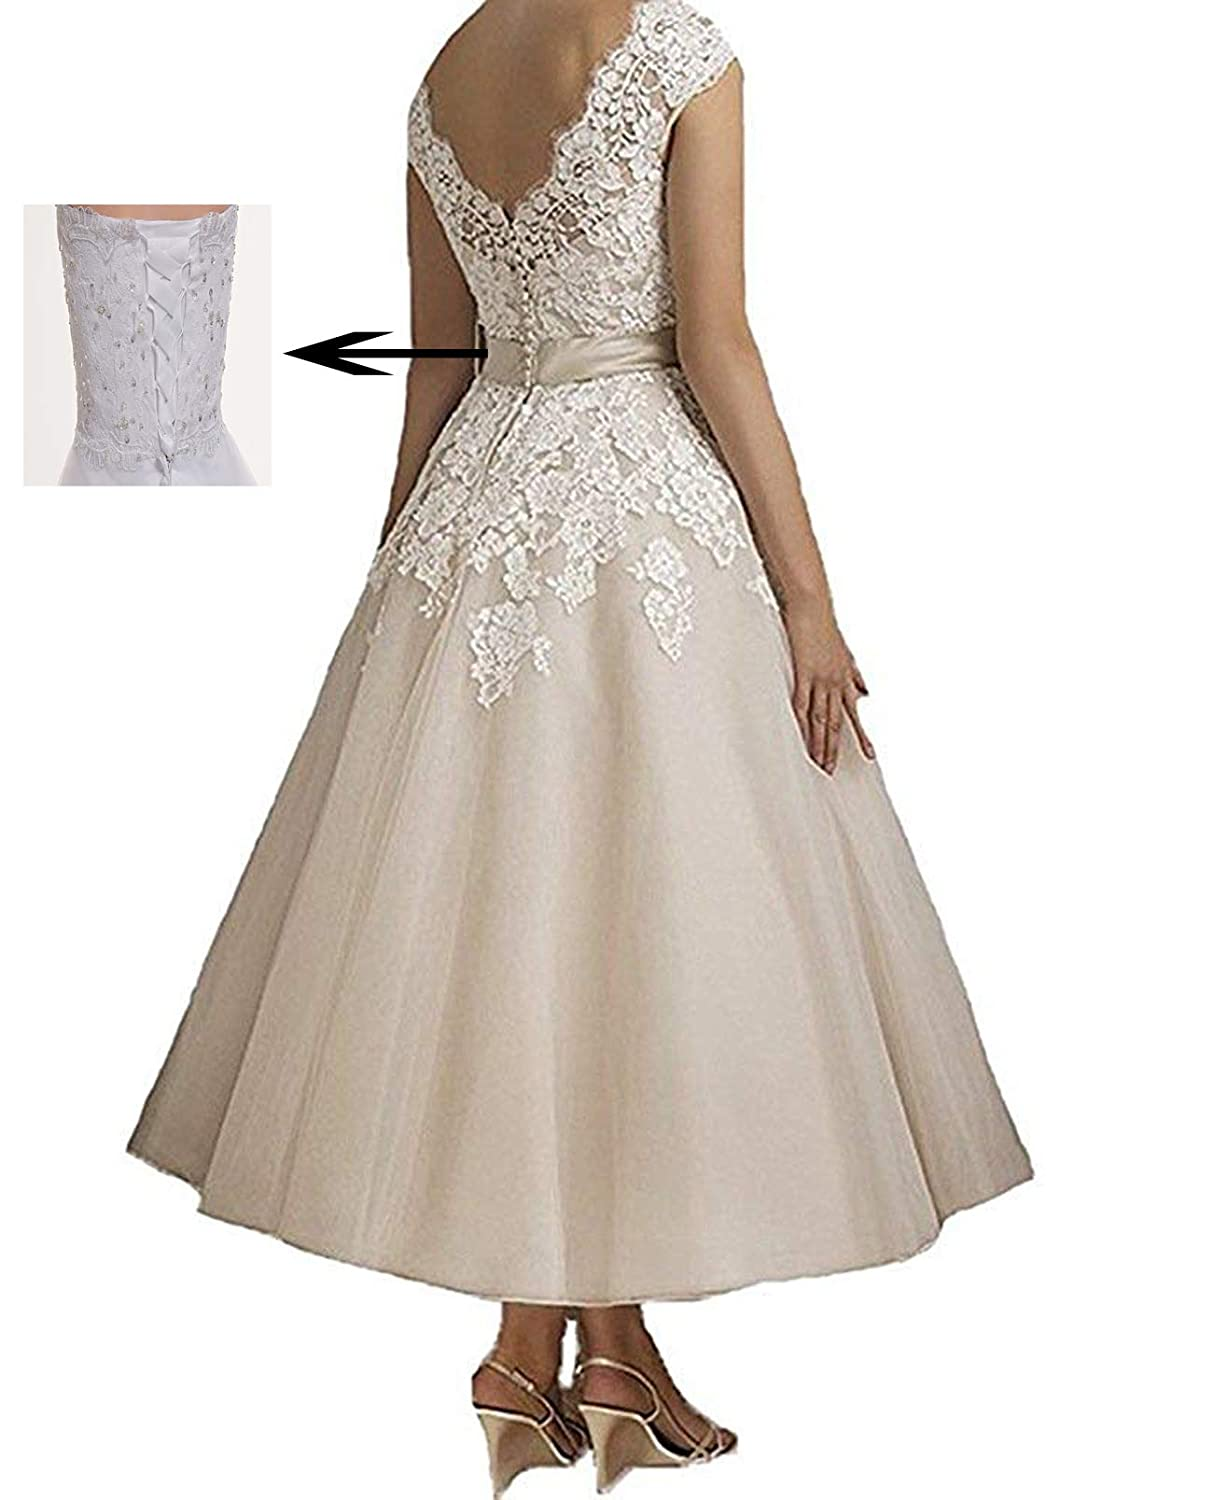 641d457e4c6 Jdress Women s Vintage Short Tea Length Lace Wedding Dresses for Bride 2019